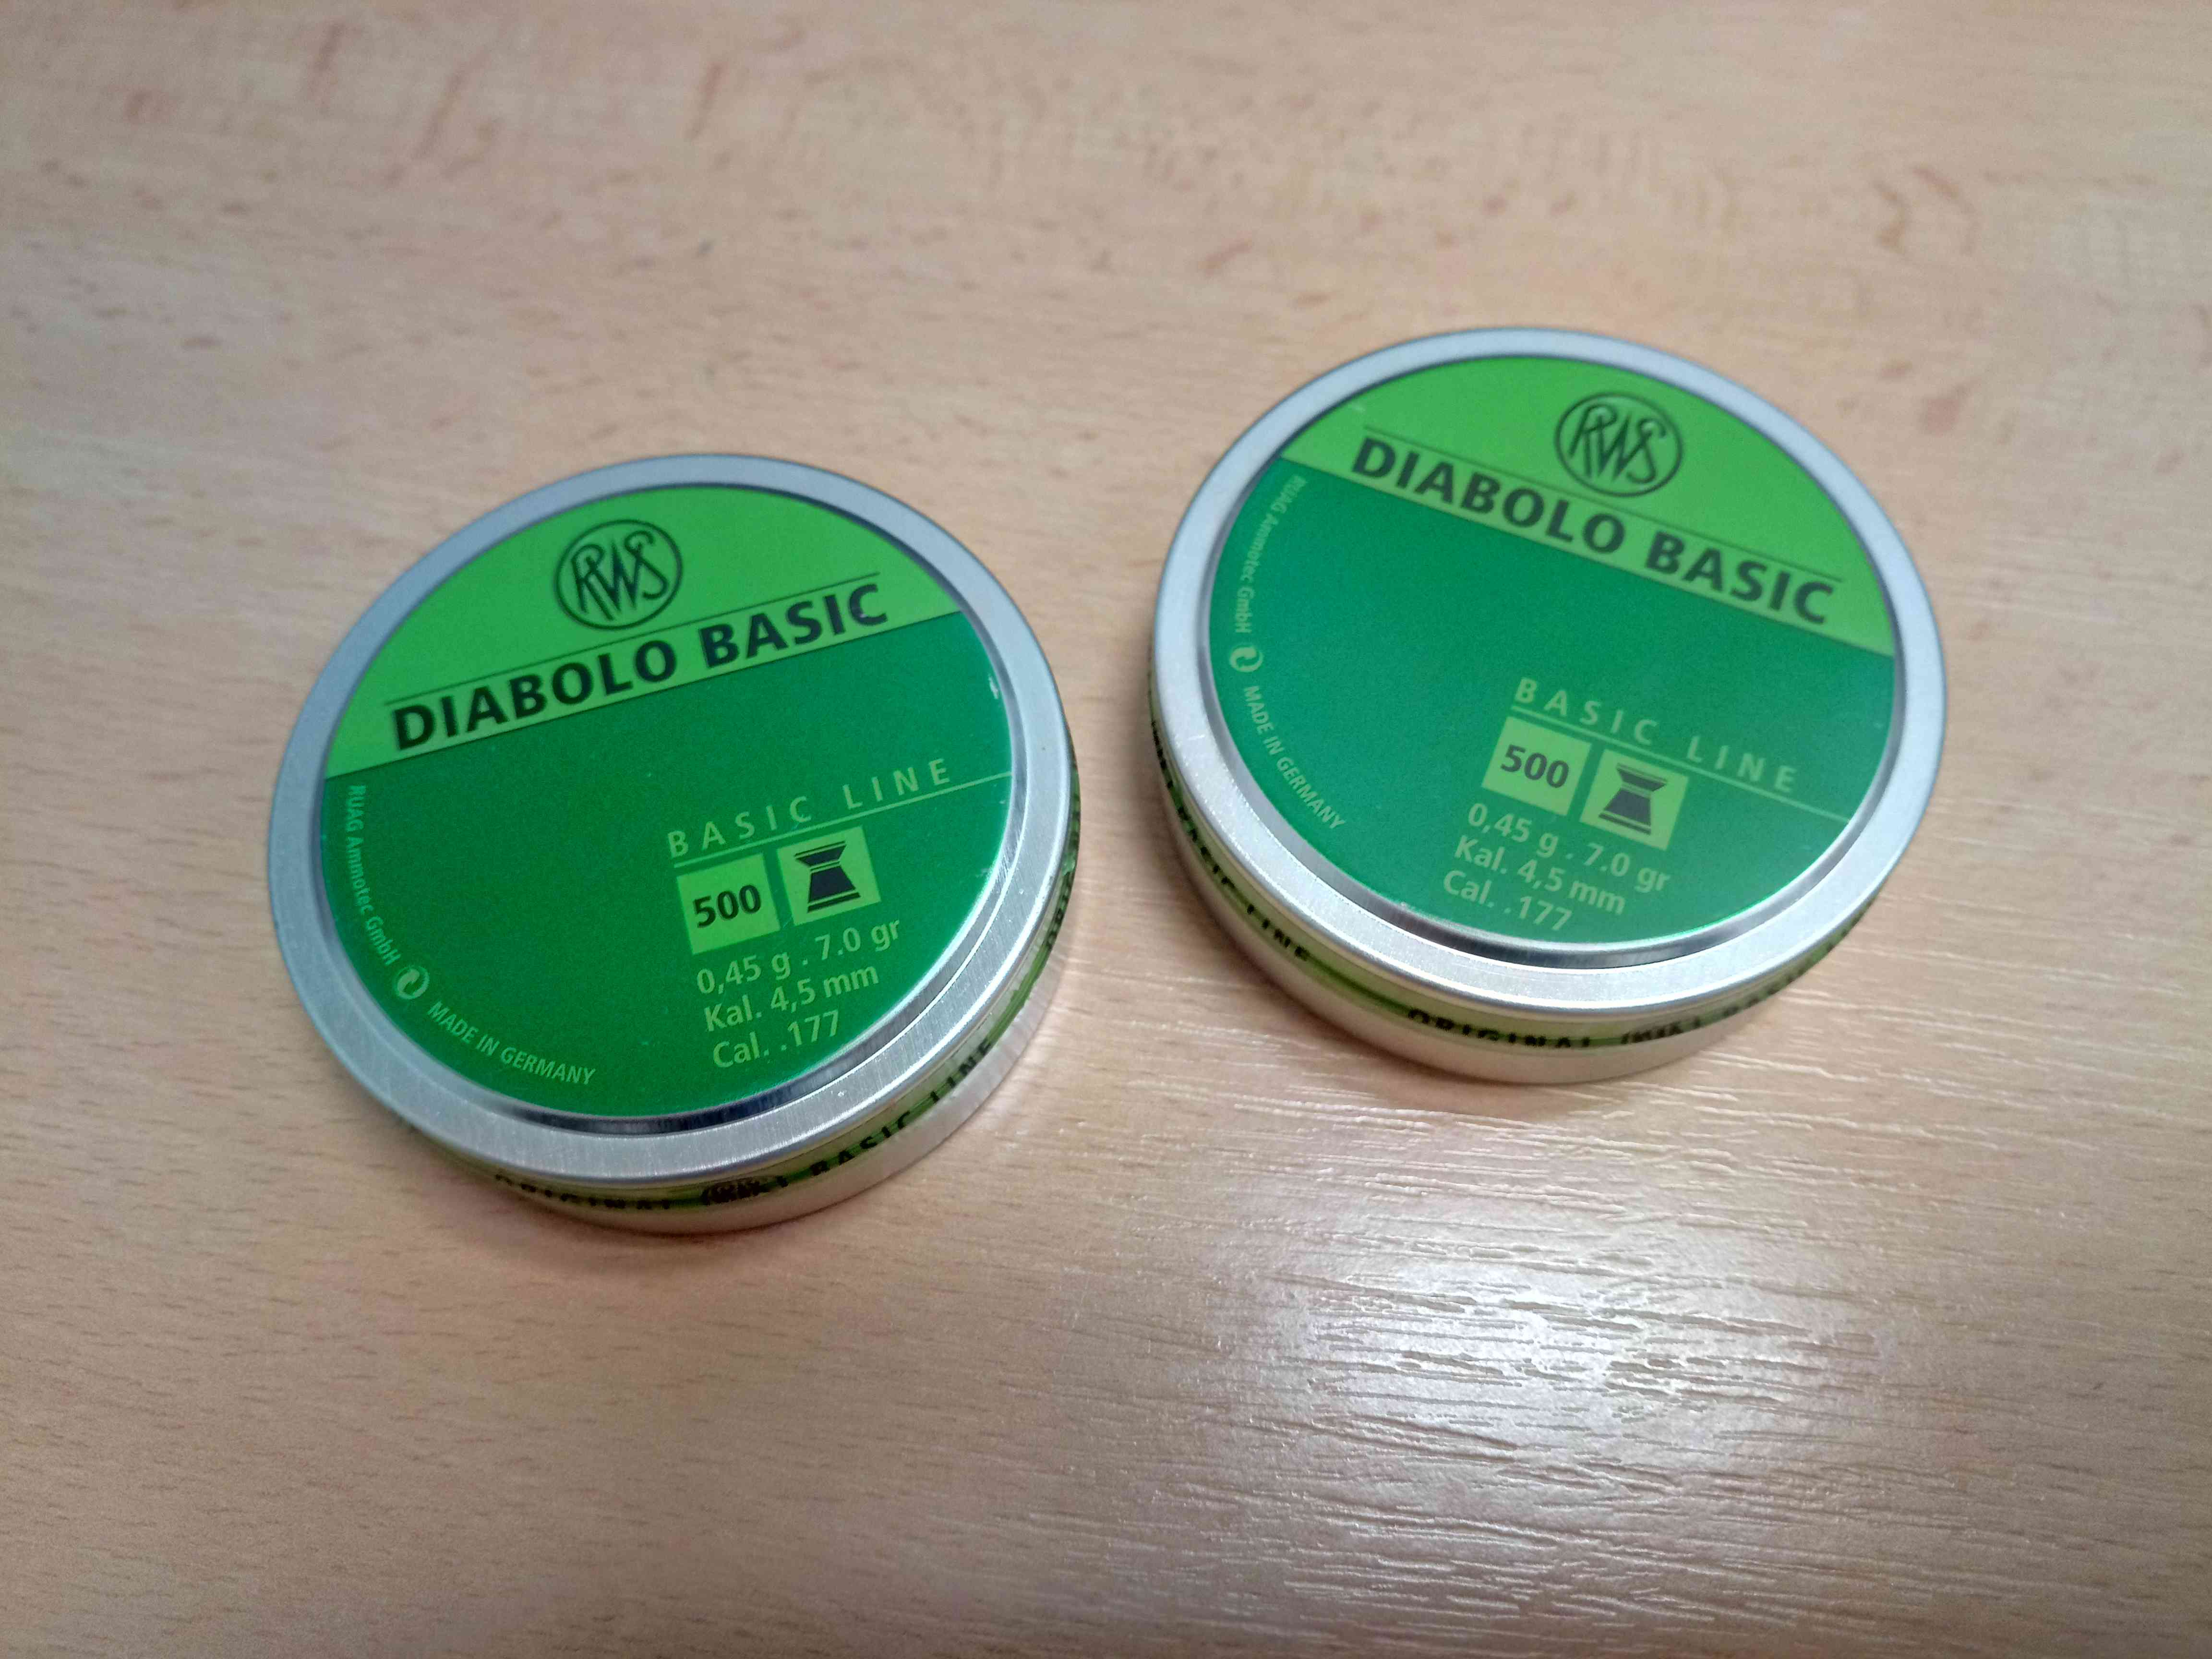 Diabolo RWS BASIC 500ks 4,5mm cal. 177